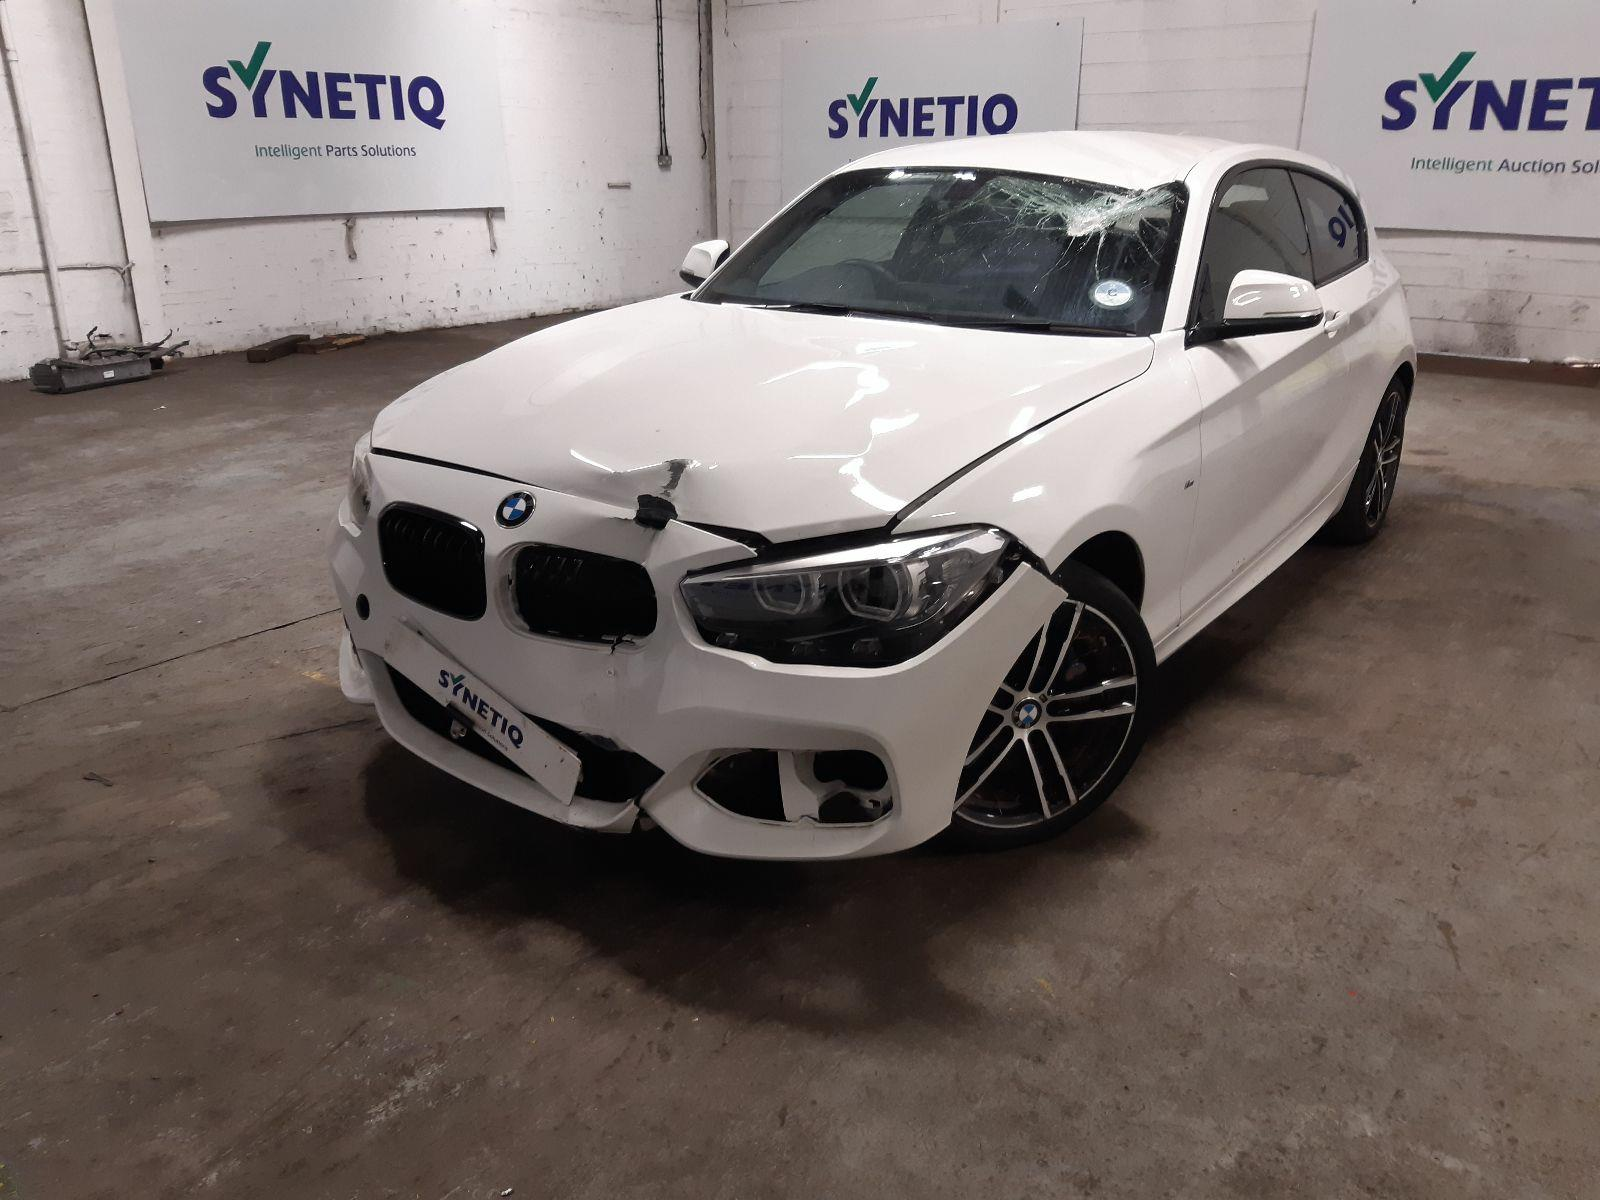 Synetiq 2019 Bmw 1 Series F21 2012 To 2019 118i M Sport Shadow Edition 3 Door Hatchback Petrol Manual Breaking For Used And Spare Parts